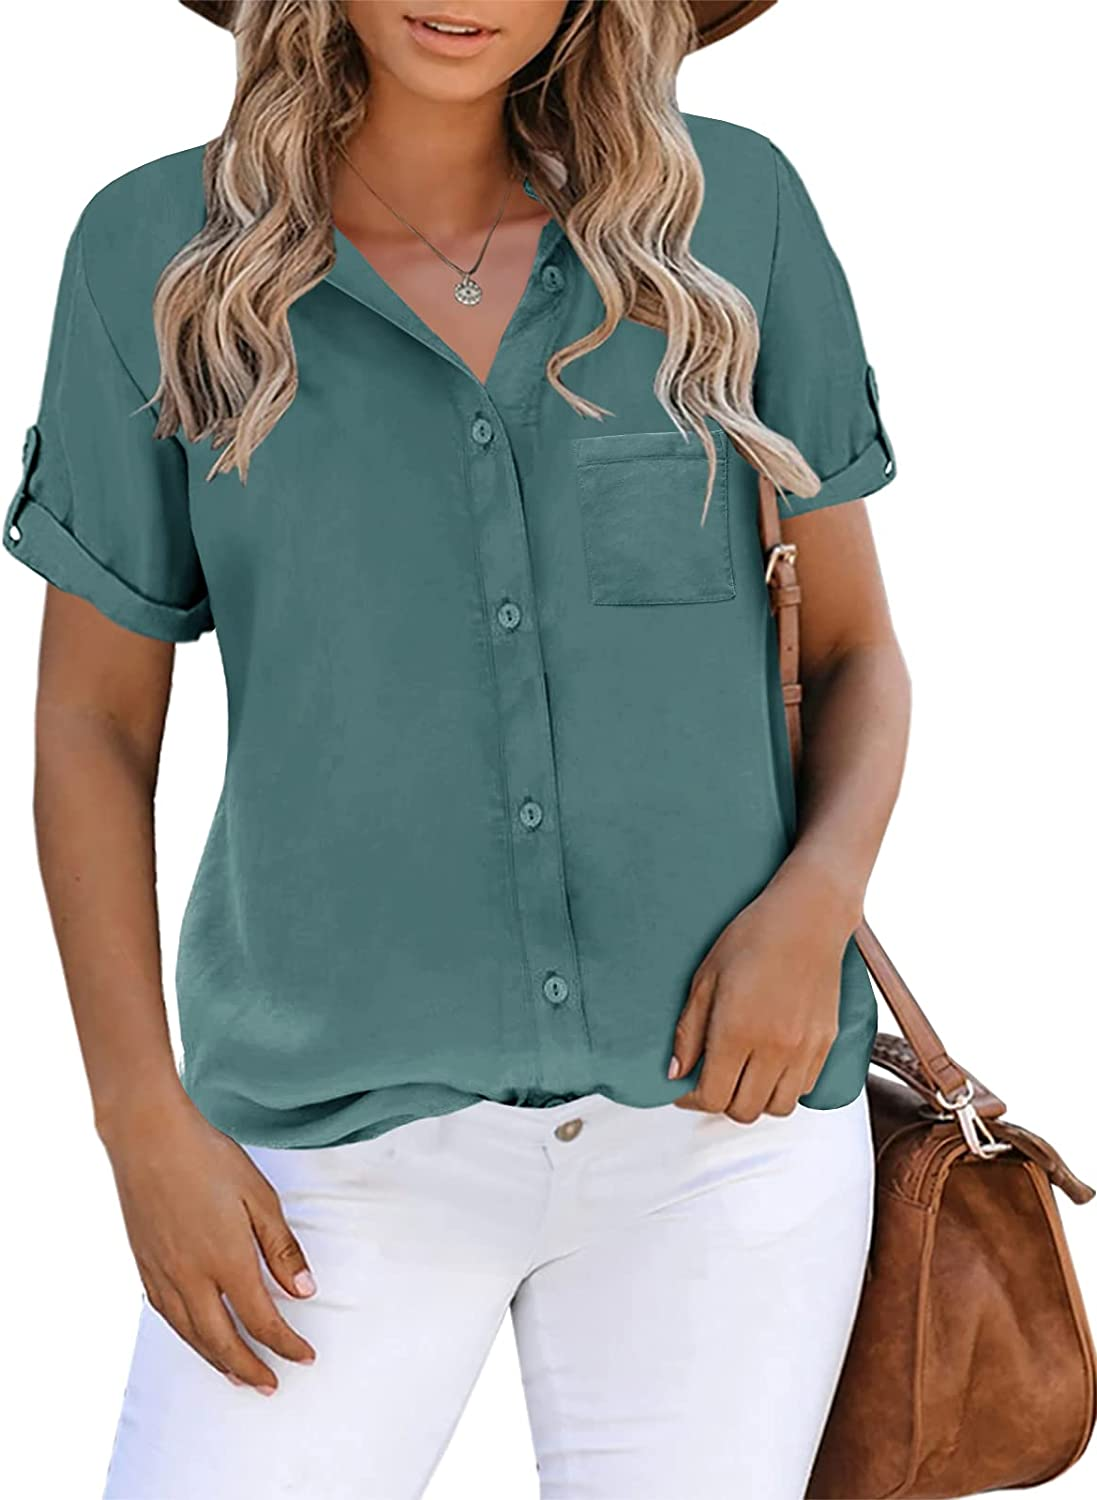 Inorin Womens Button Down Shirts Translated Work Busi Short Sleeve Inventory cleanup selling sale Collared